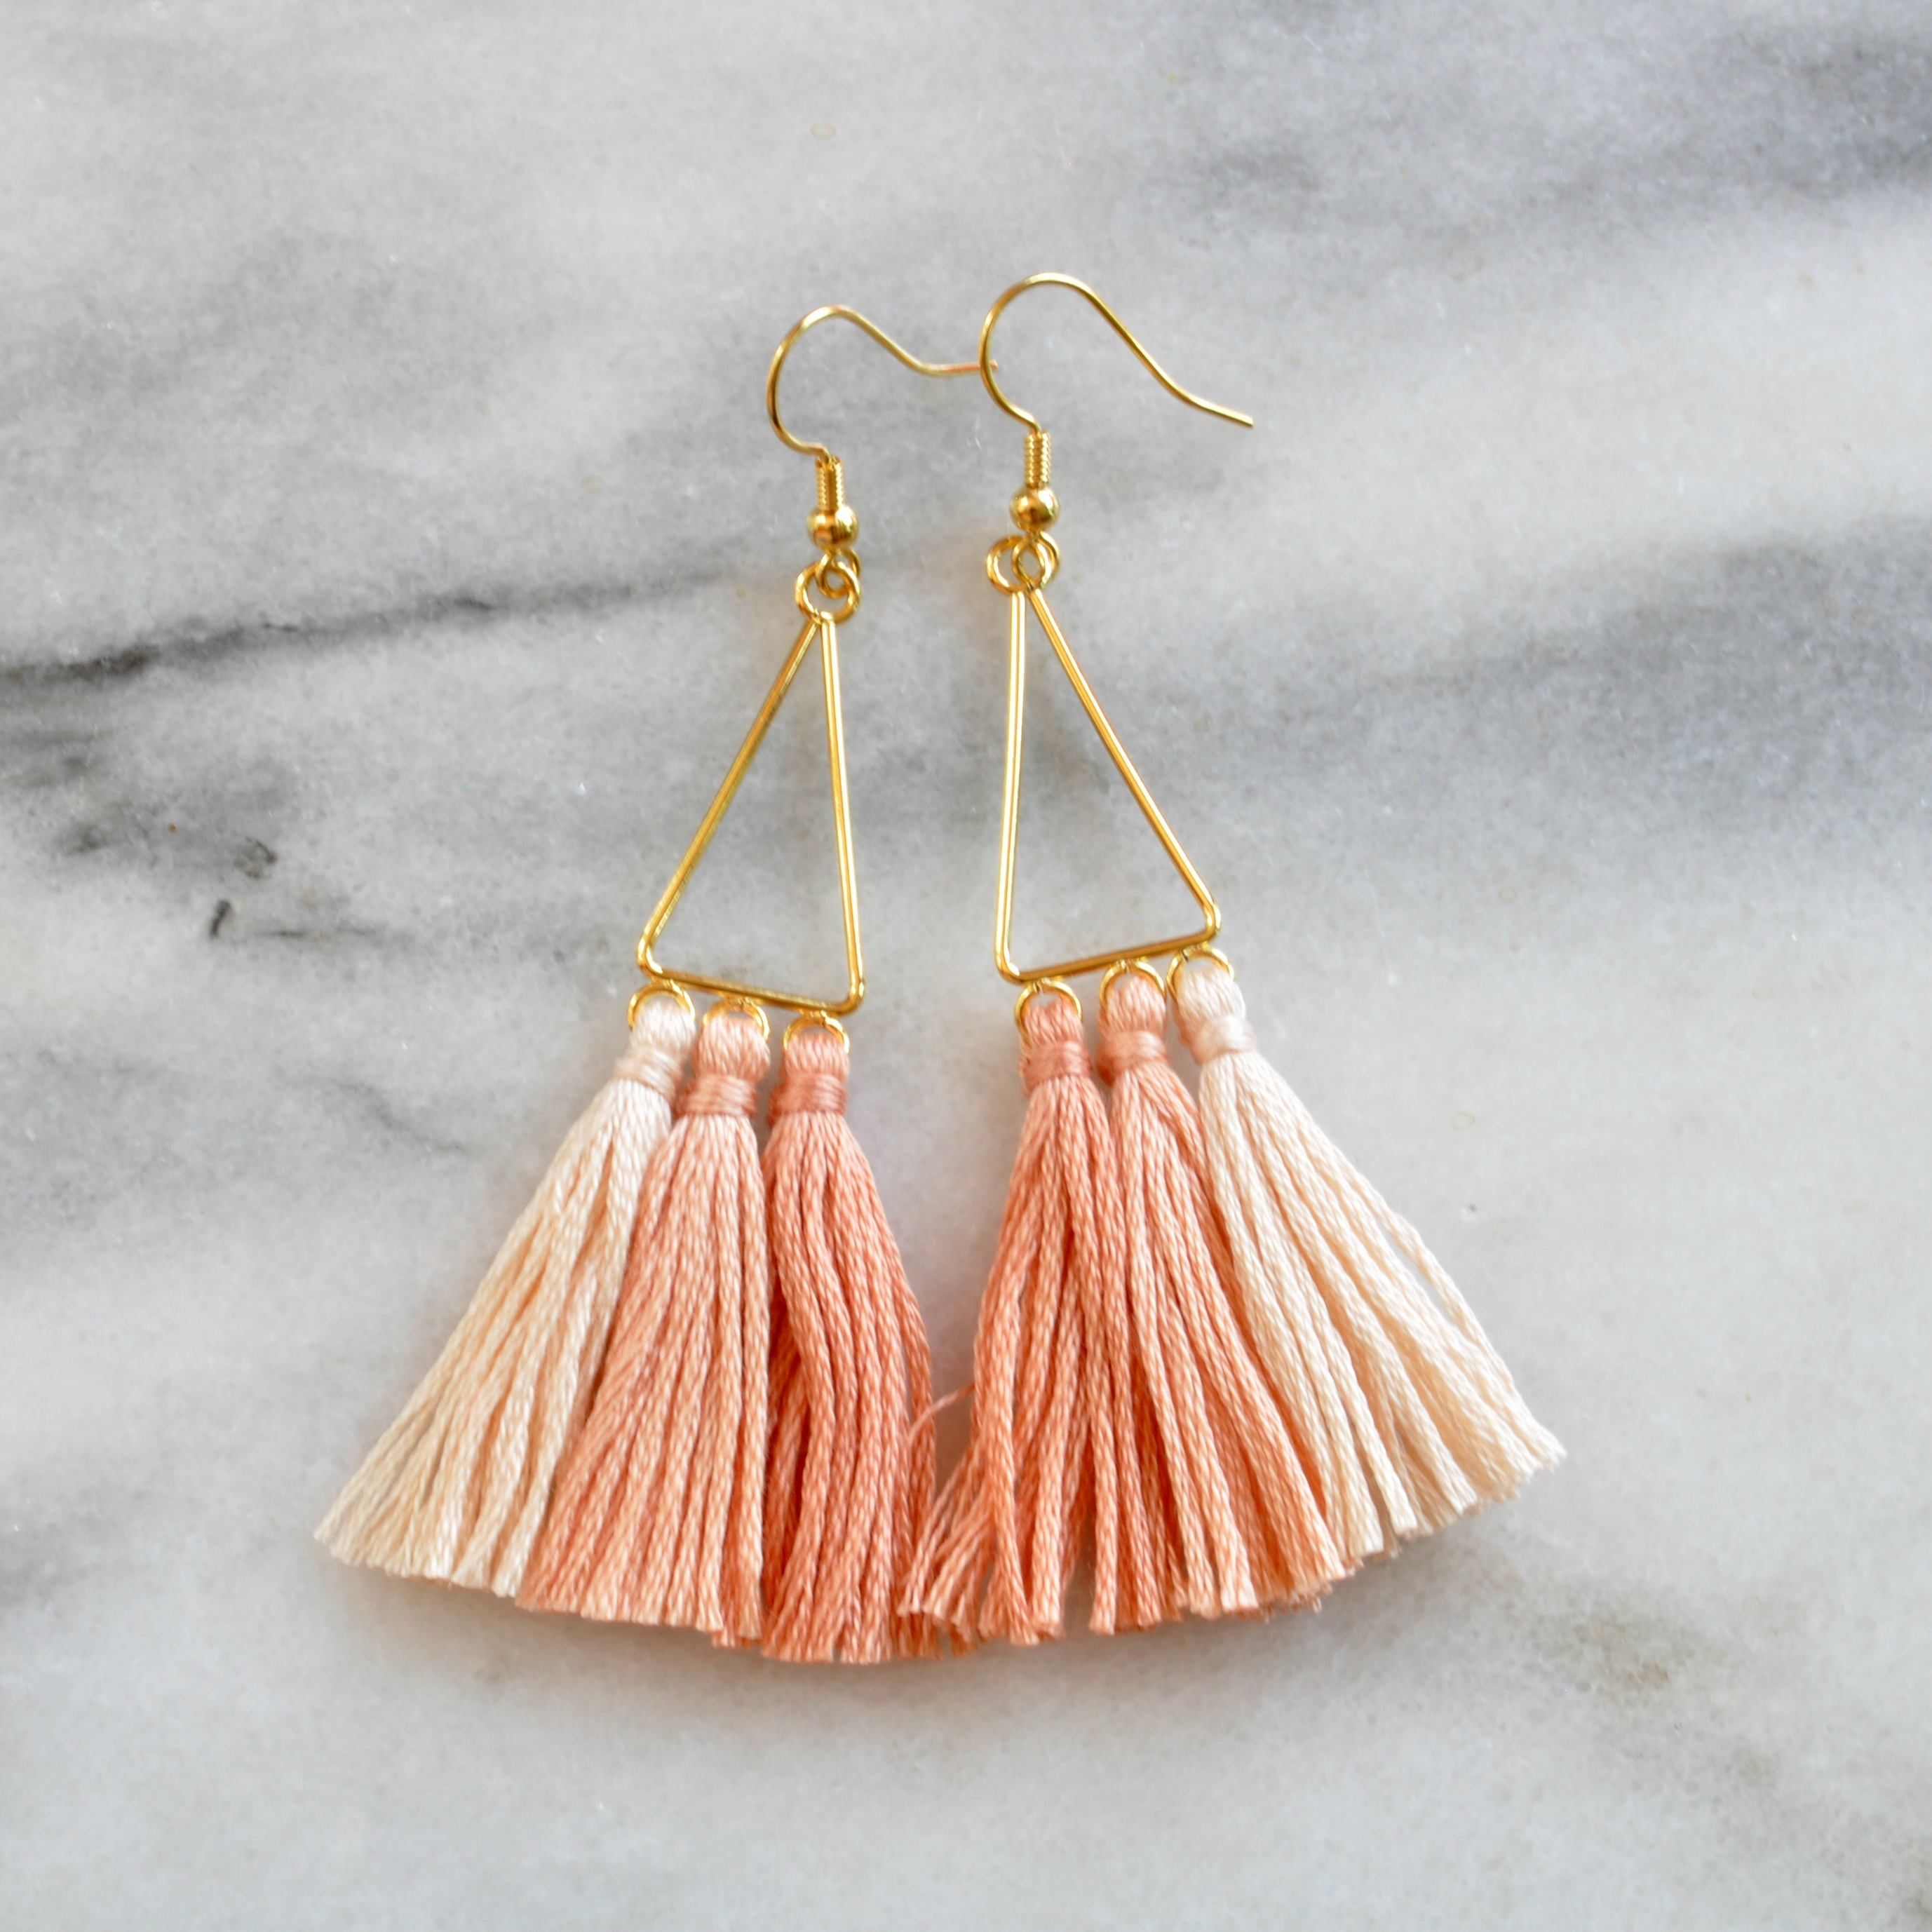 Libby & Smee Ombre Triangle Blush tassel Earrings, still life